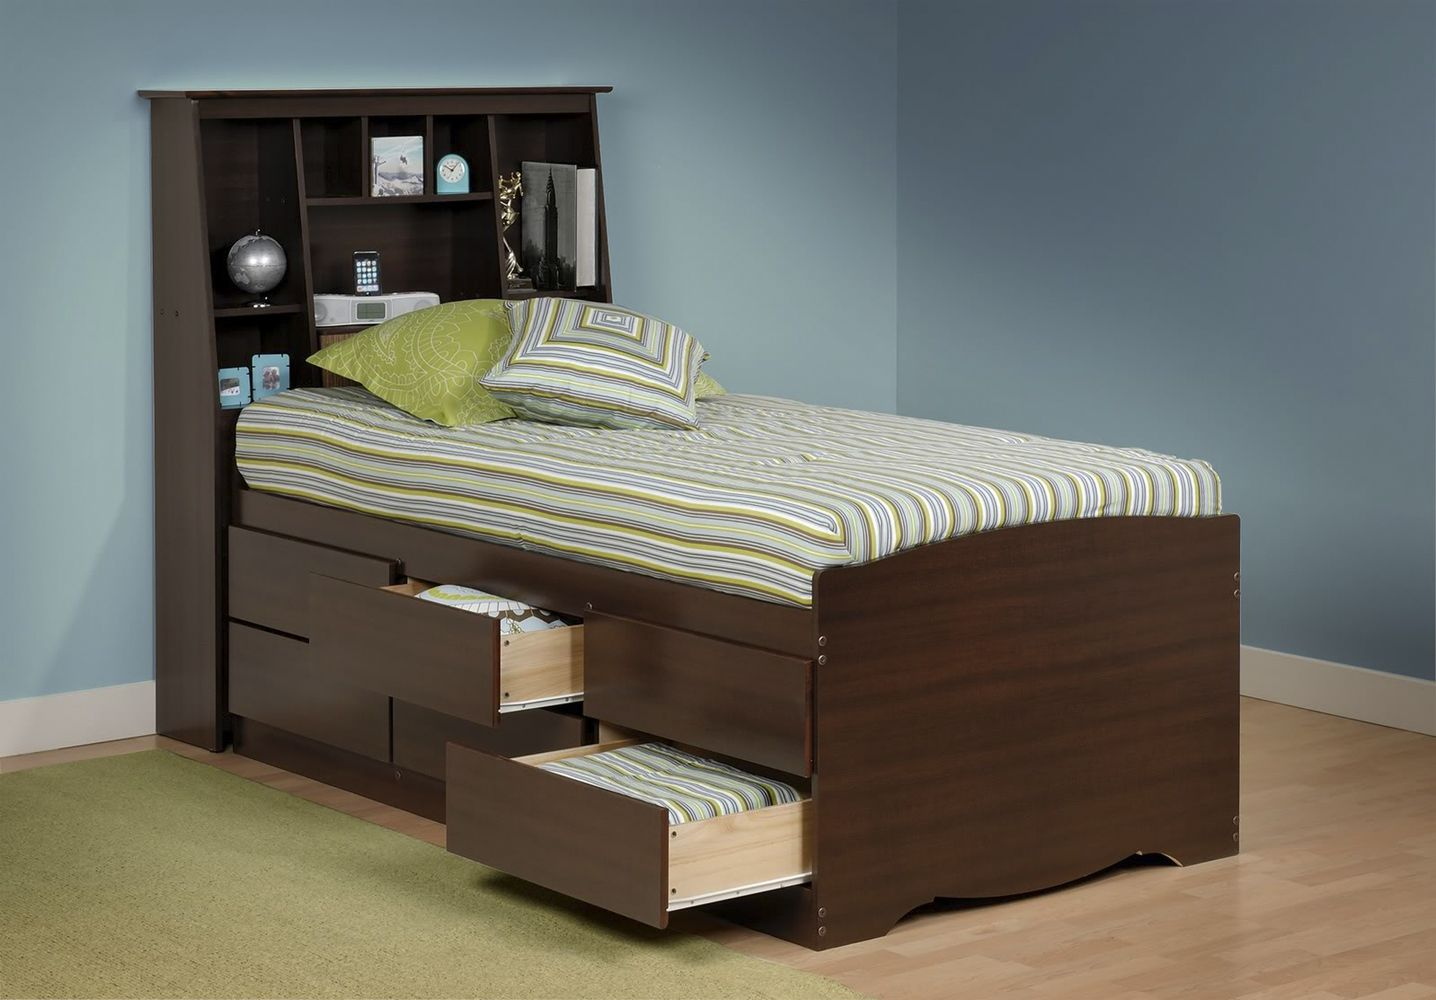 Image Detail For Prepac Tall Captains Platform Storage Bed W Bookcase Headboard By Oj